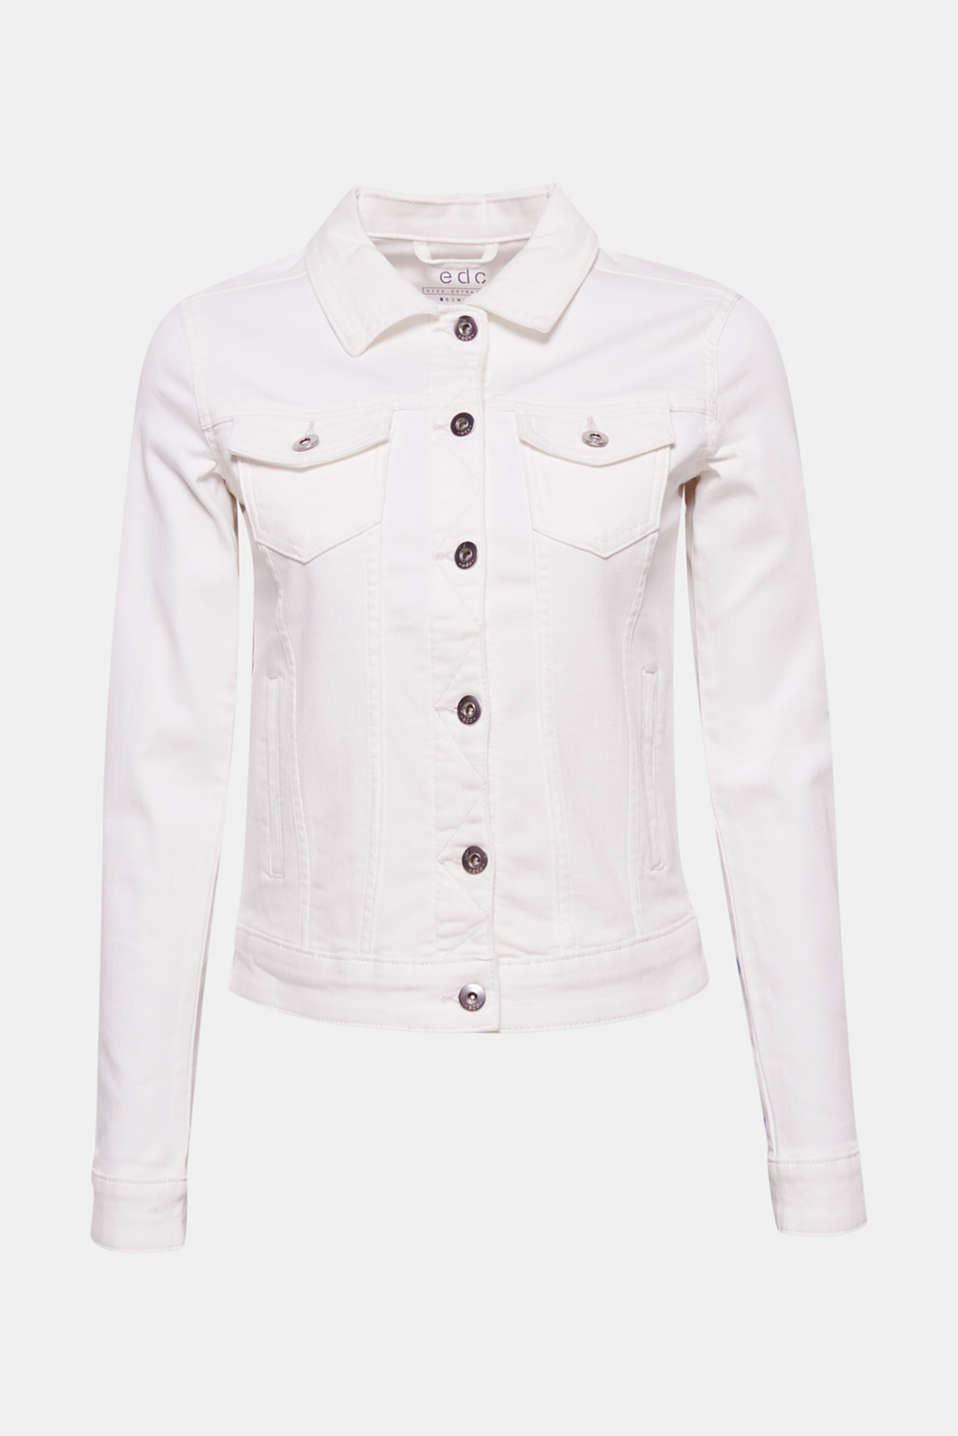 This denim jacket in pure white cotton denim with added stretch for comfort creates a fresh, cool look.